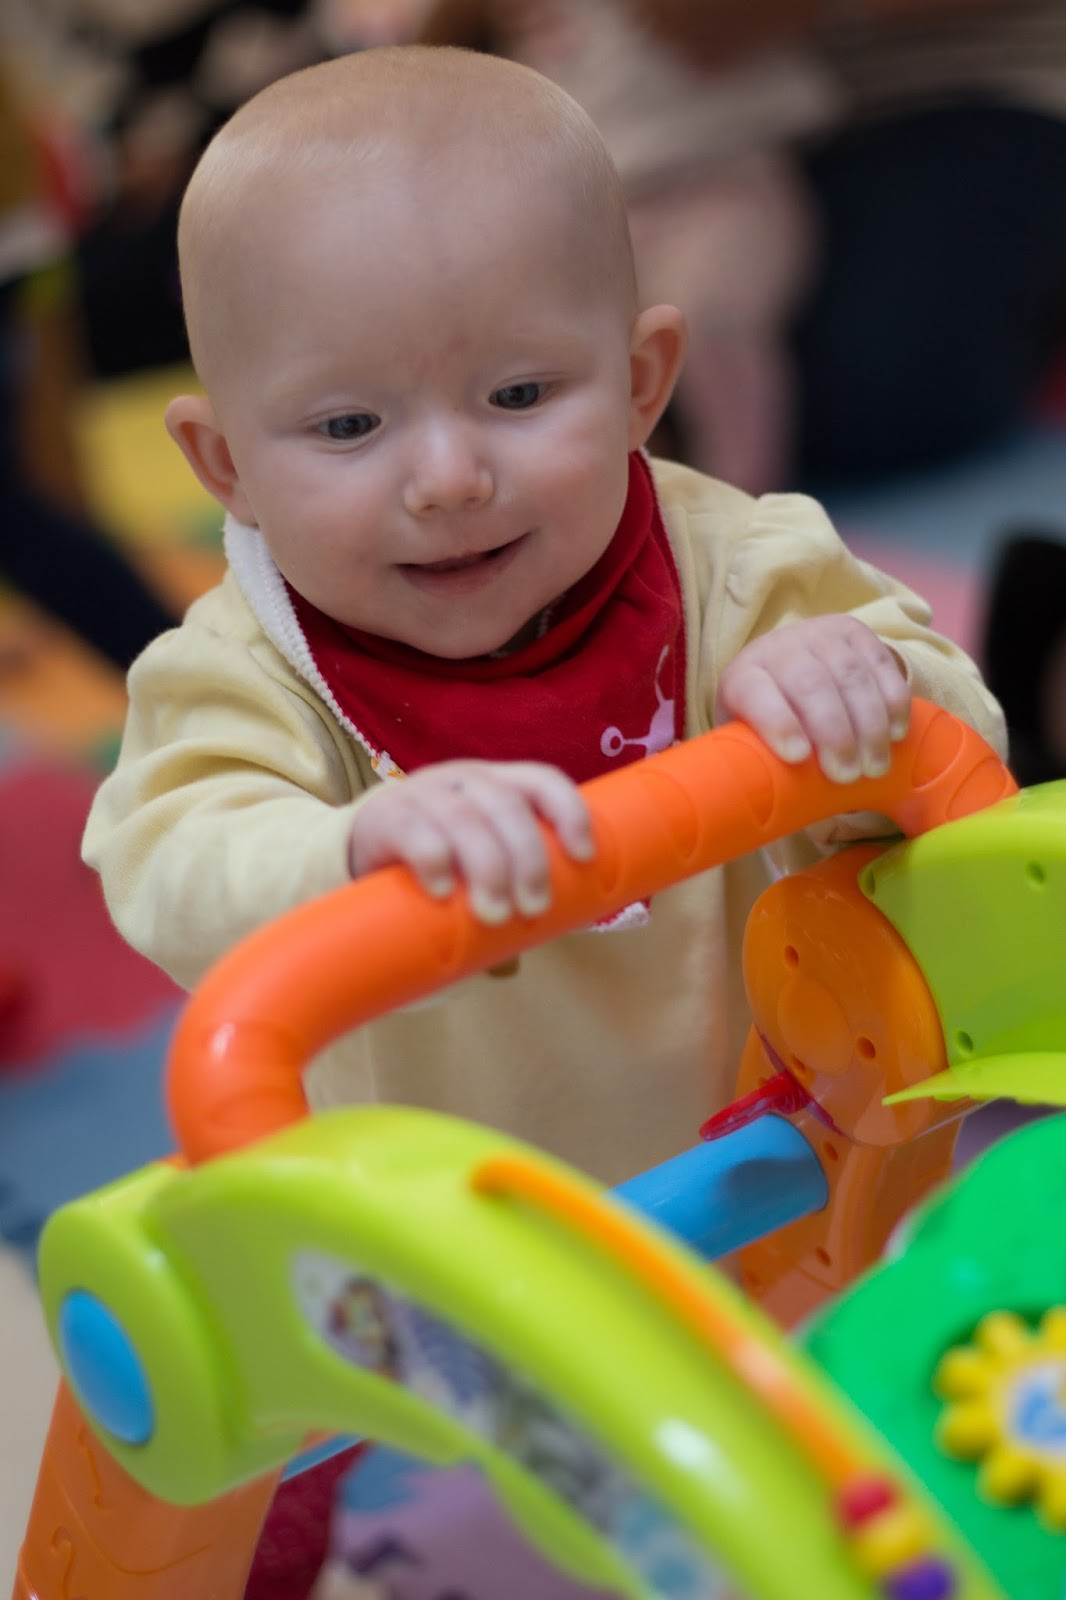 A baby standing up and holding on to a brightly coloured plastic walker